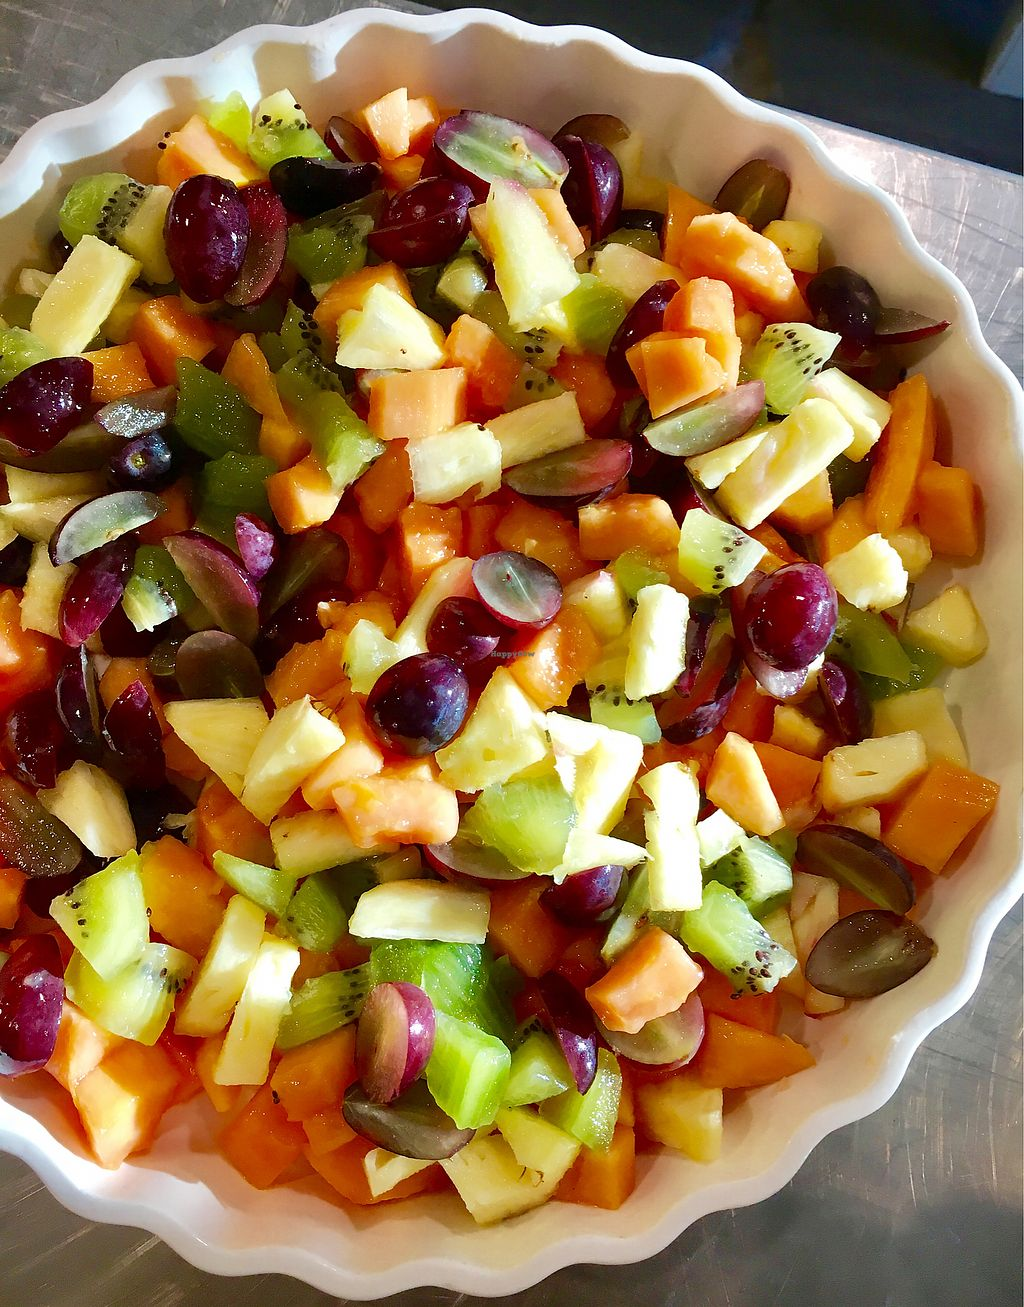 """Photo of Greengate  by <a href=""""/members/profile/IngridduToit"""">IngridduToit</a> <br/>Fruit salad  <br/> December 9, 2017  - <a href='/contact/abuse/image/106748/333903'>Report</a>"""